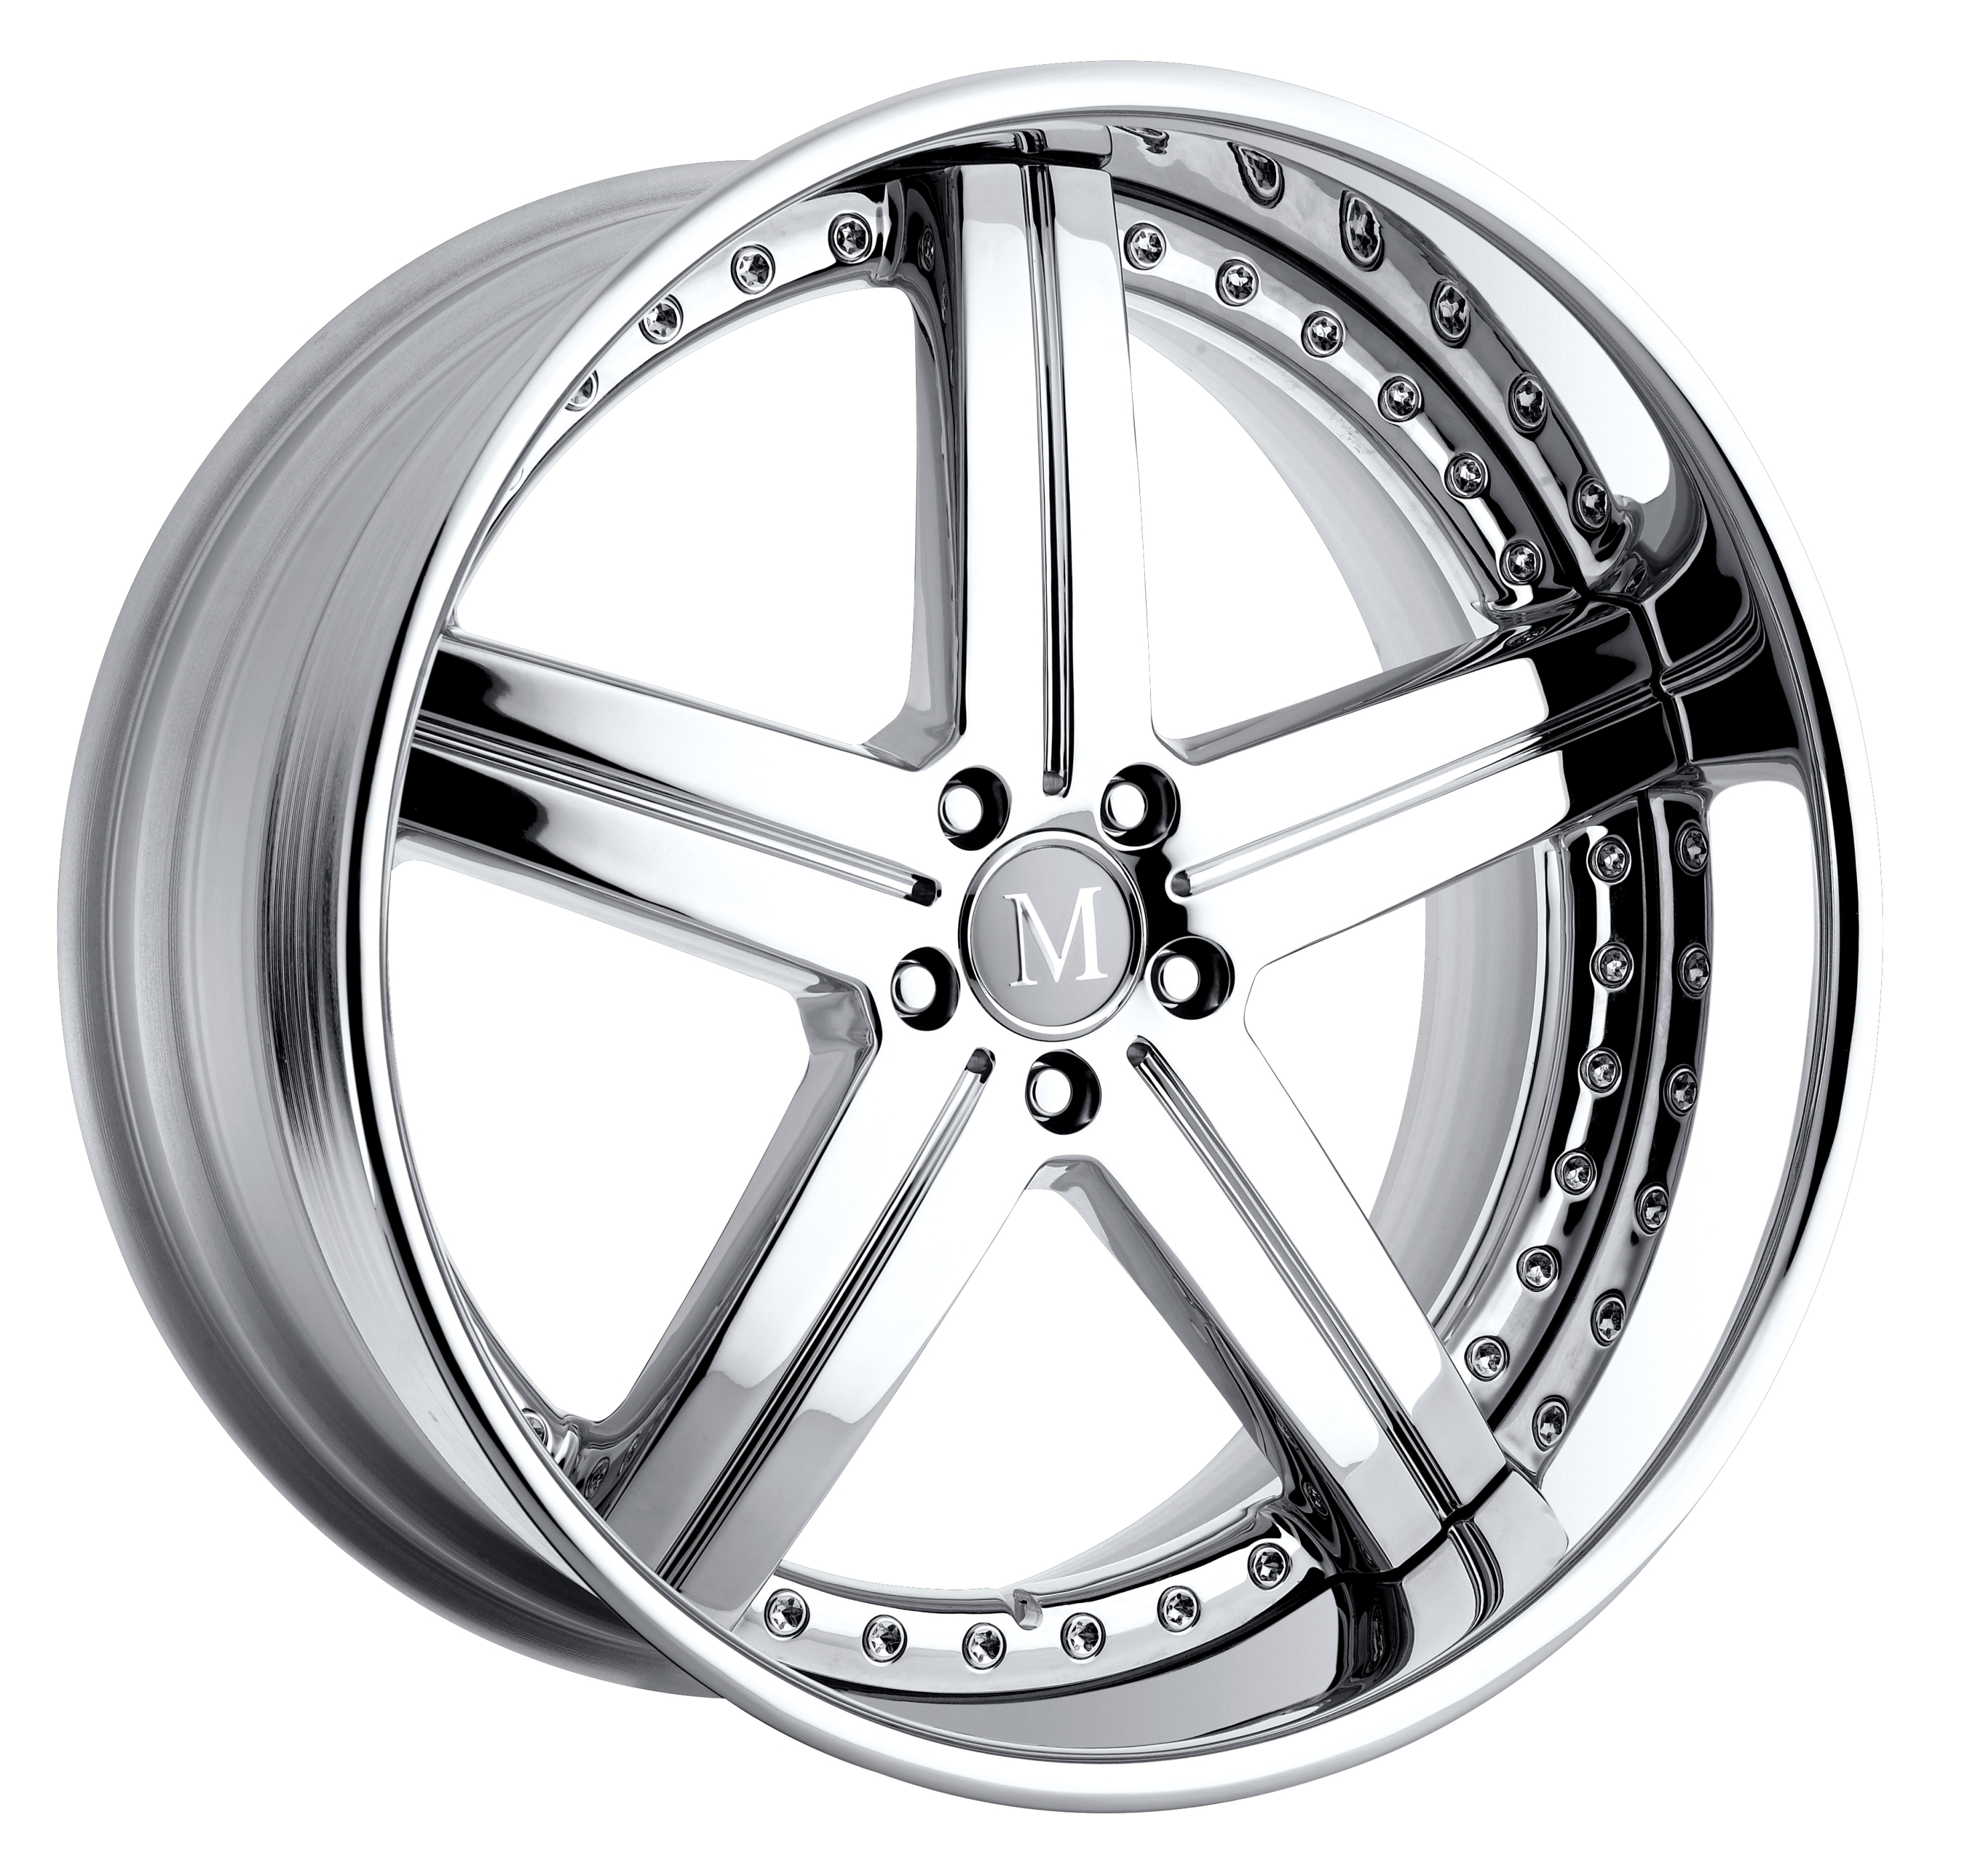 mandrus wheels mono block rotec and multi piece stuttgart